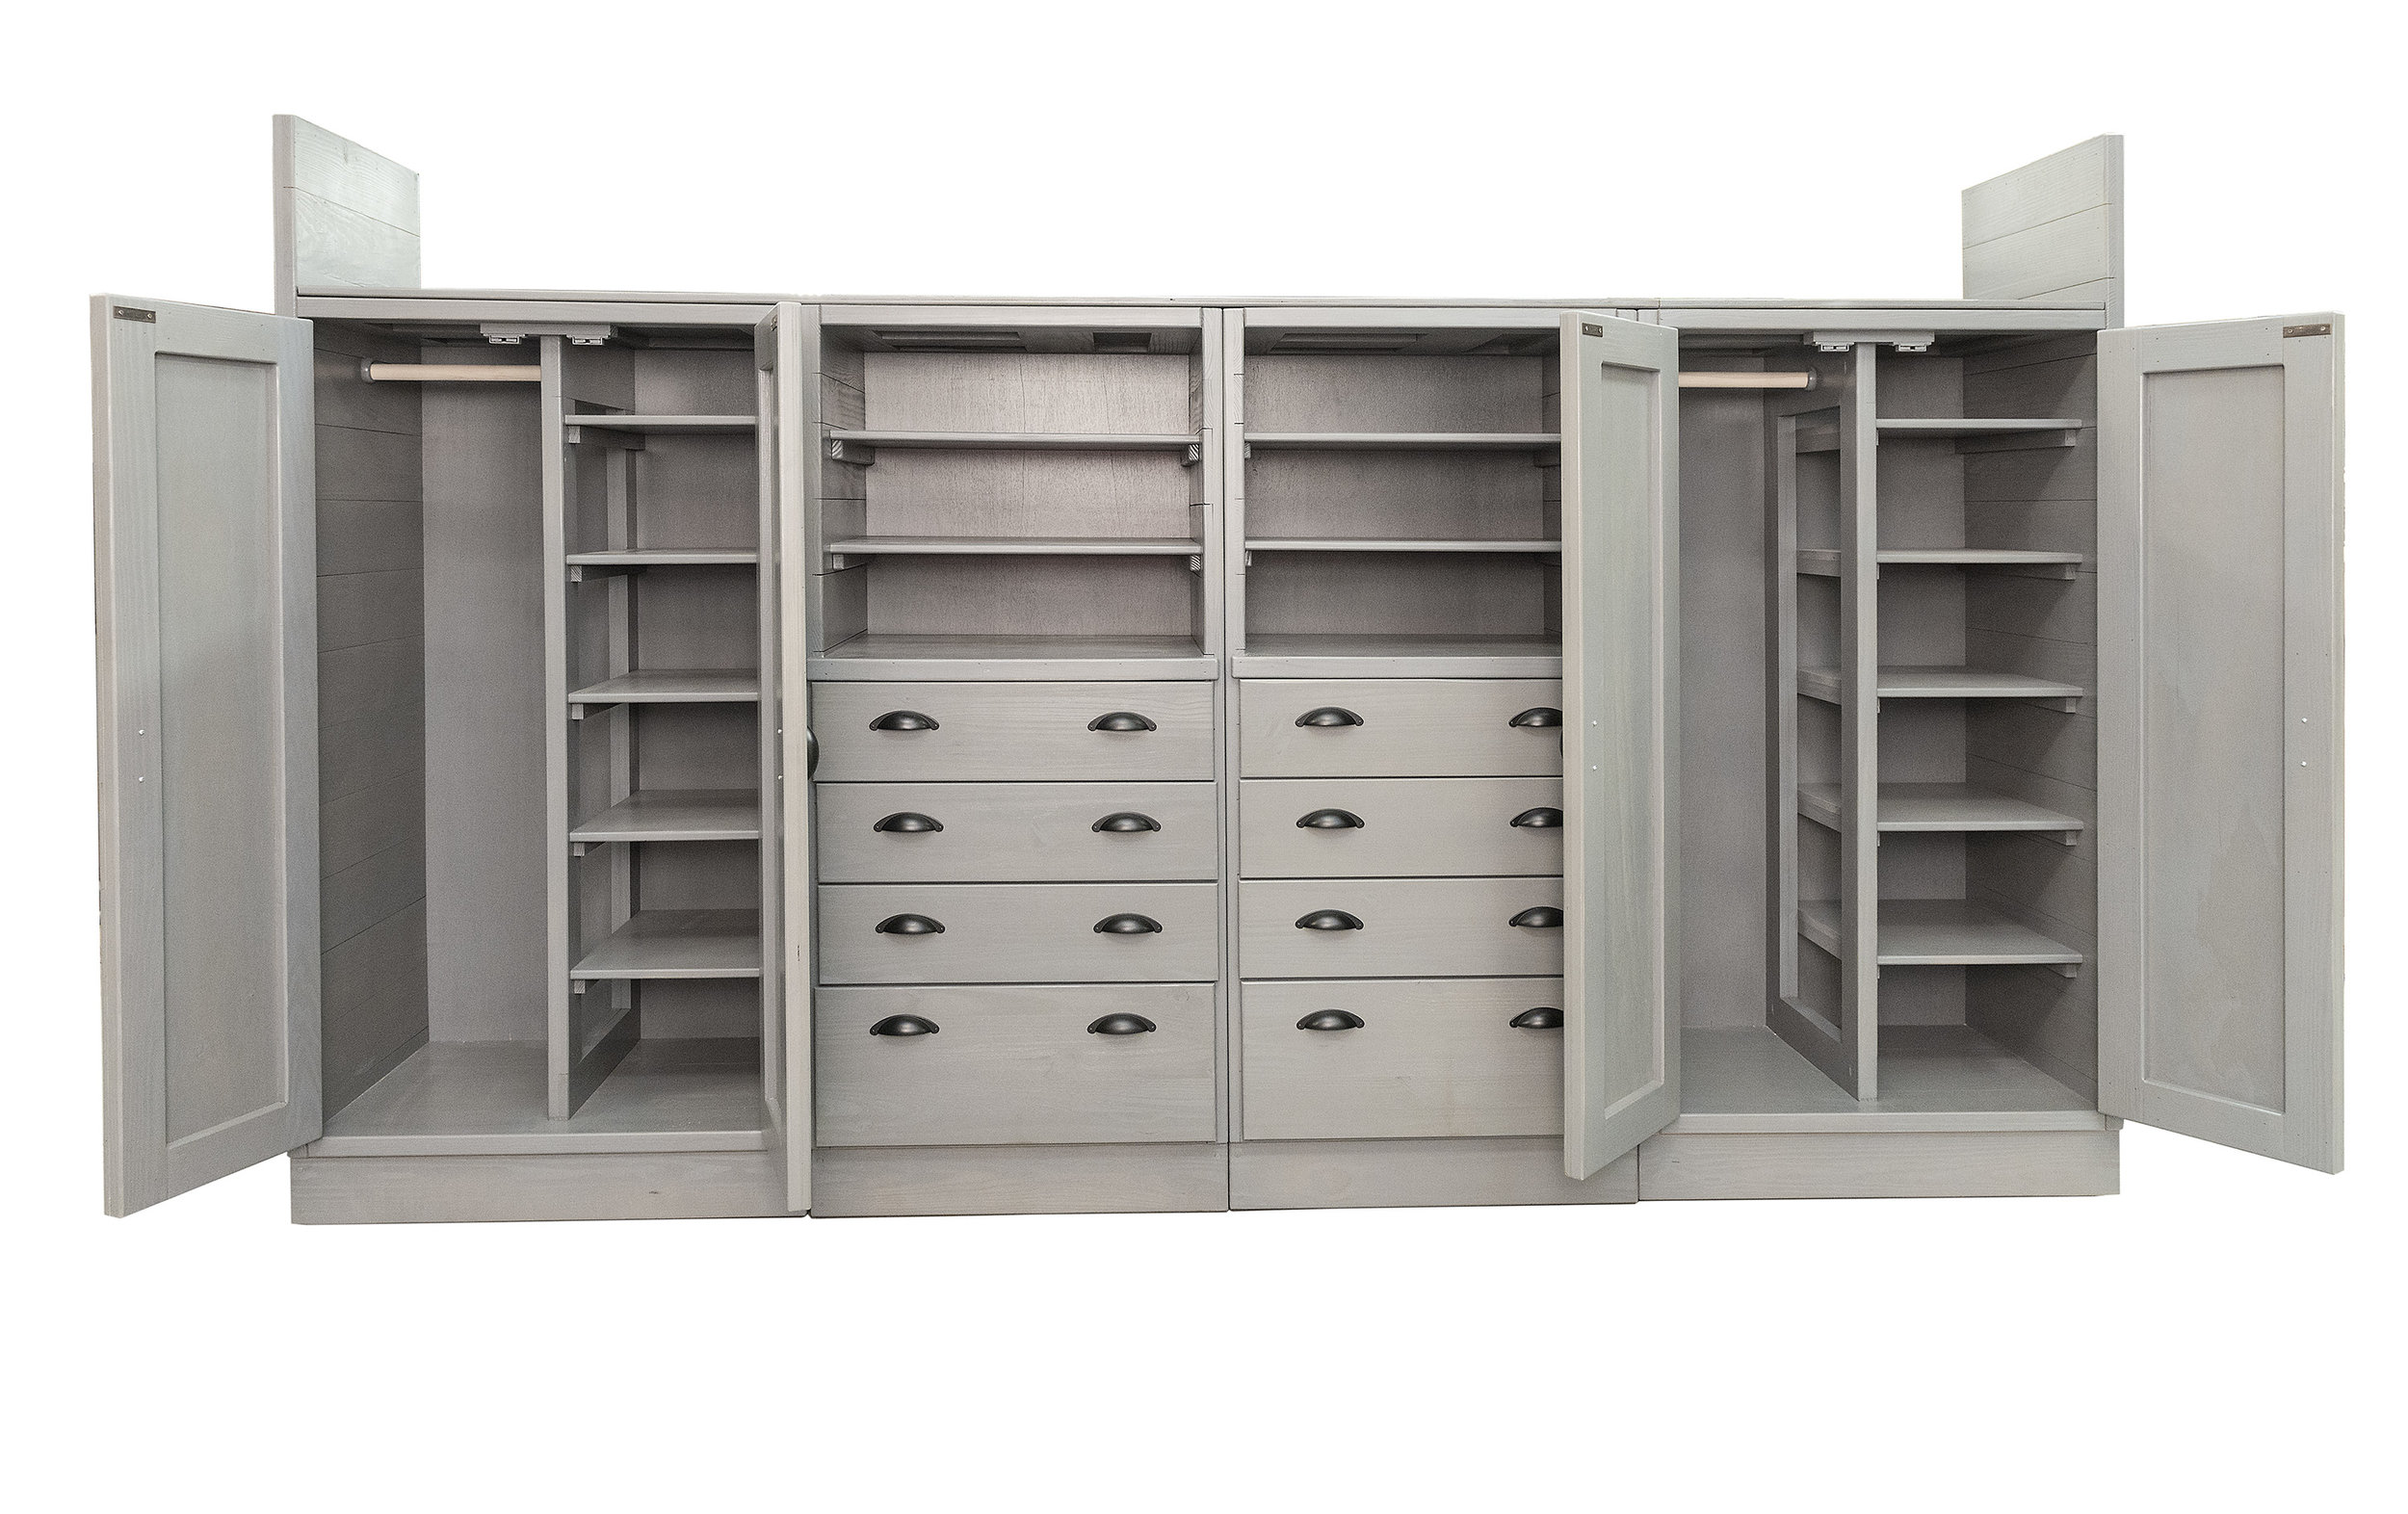 Custom clothing storage unit deisgned and built for a Residential school for children living with autism